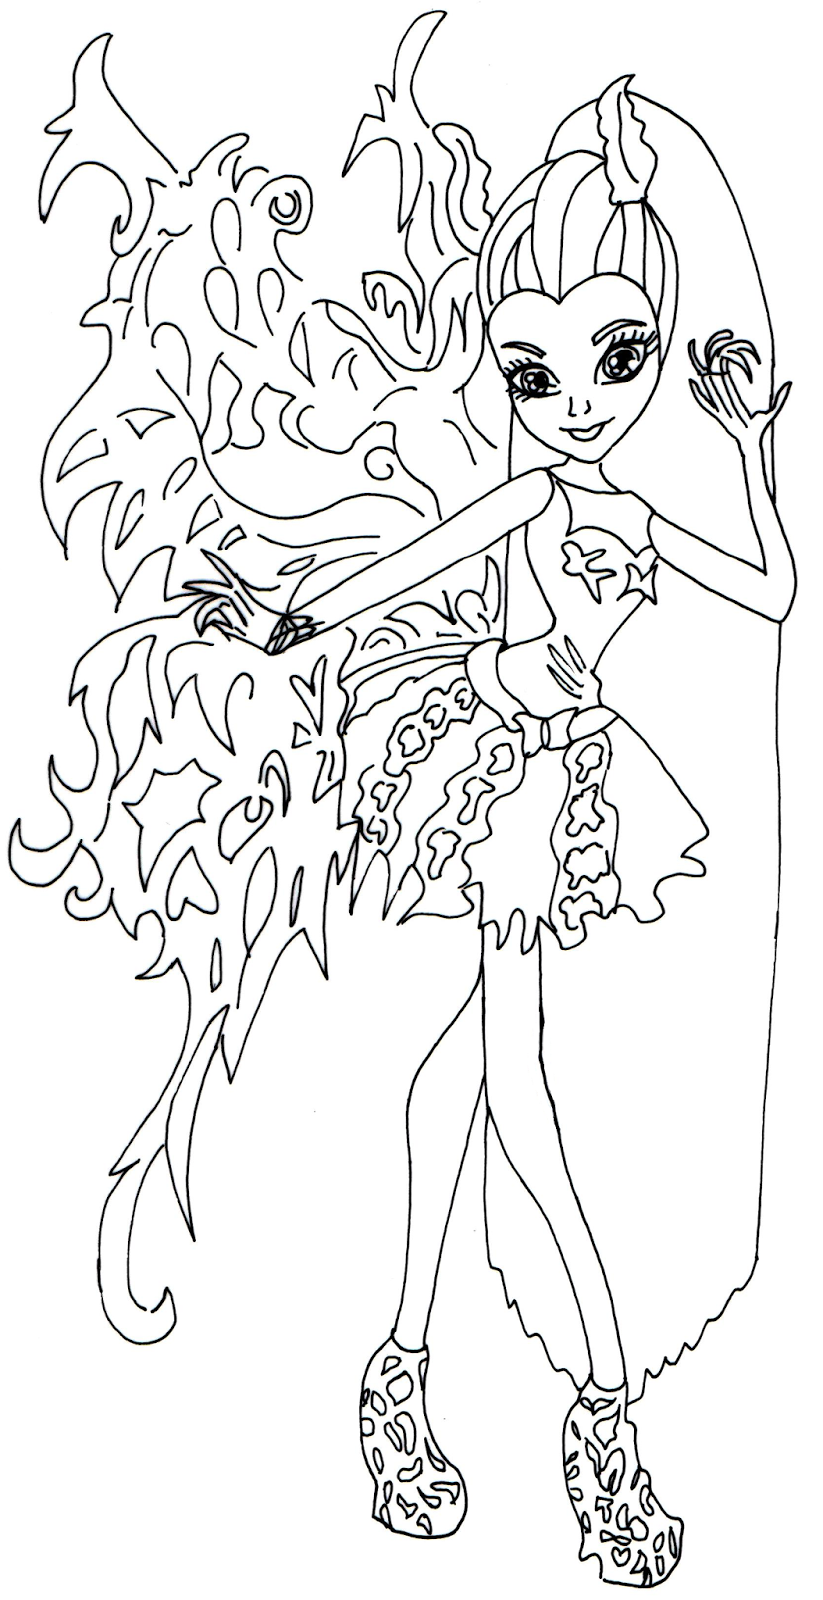 freaky fusion coloring pages - photo#9